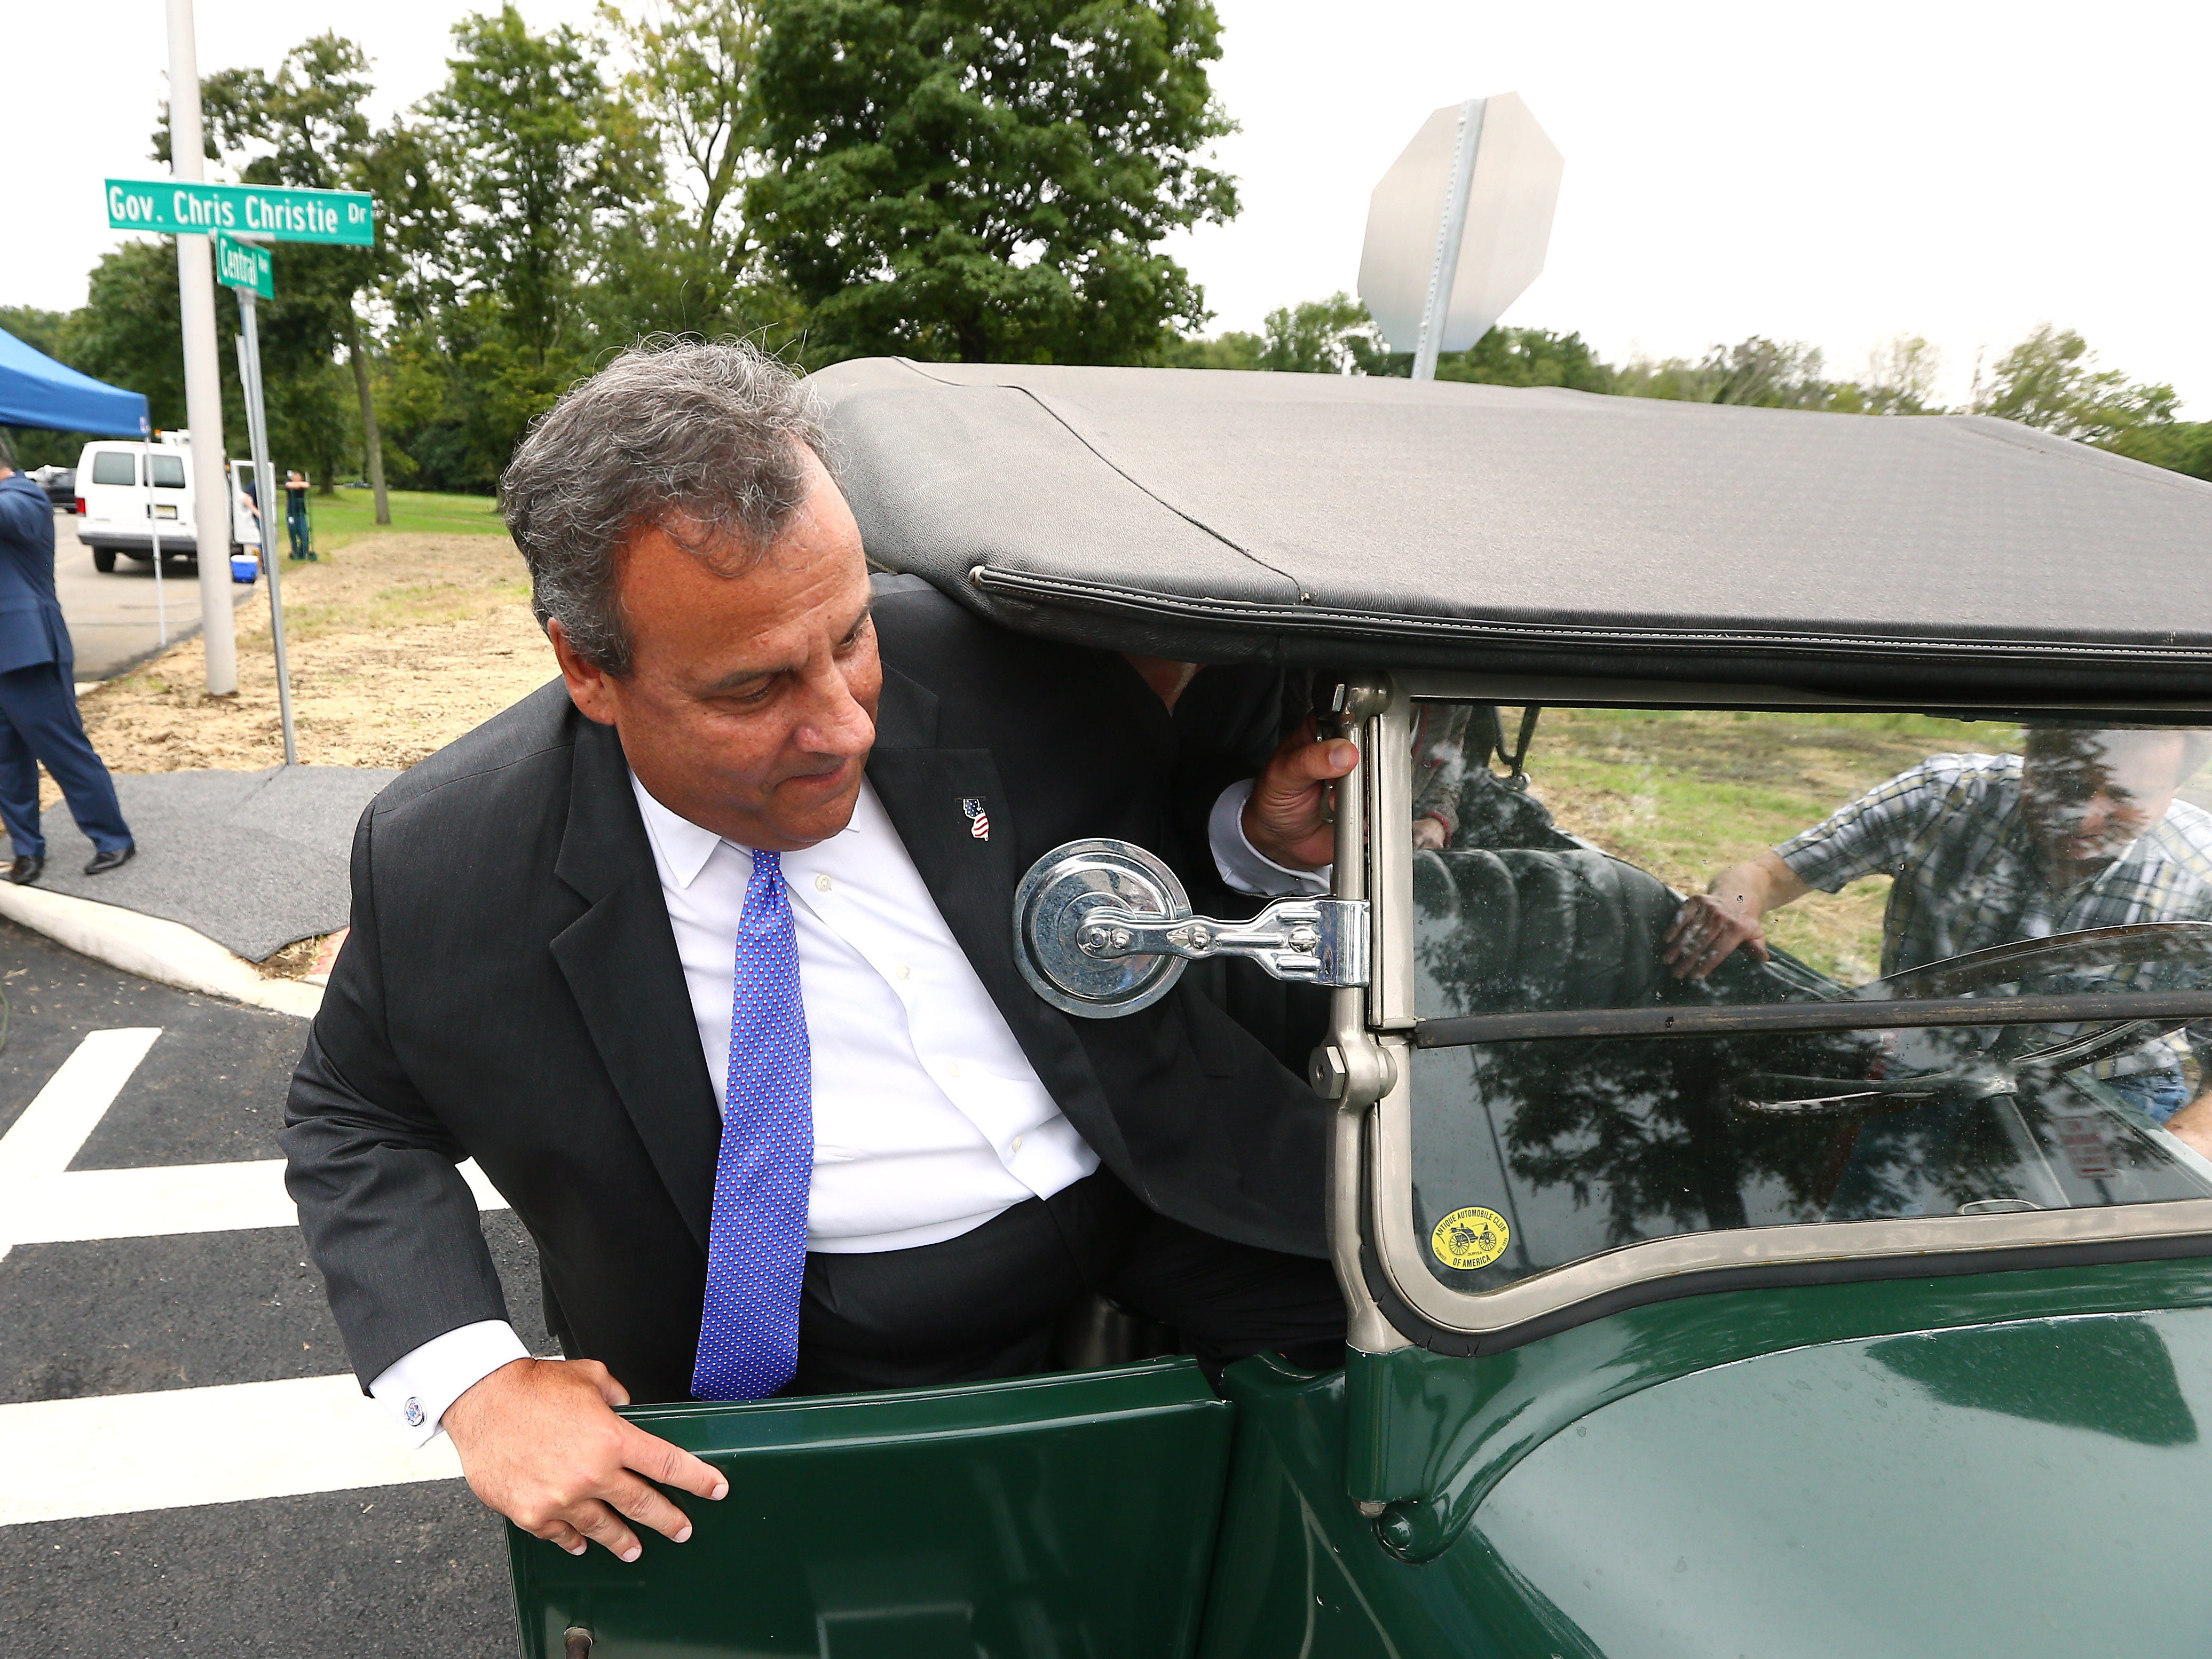 Former New Jersey Governor Chris Christie climbs into a 1922 Franklin Model 10A to take an inaugural ride on his newly dedicated Gov. Chris Christie Drive, a new main access road to Central Park of Morris County. September 12, 2018, Morris Plains, NJ